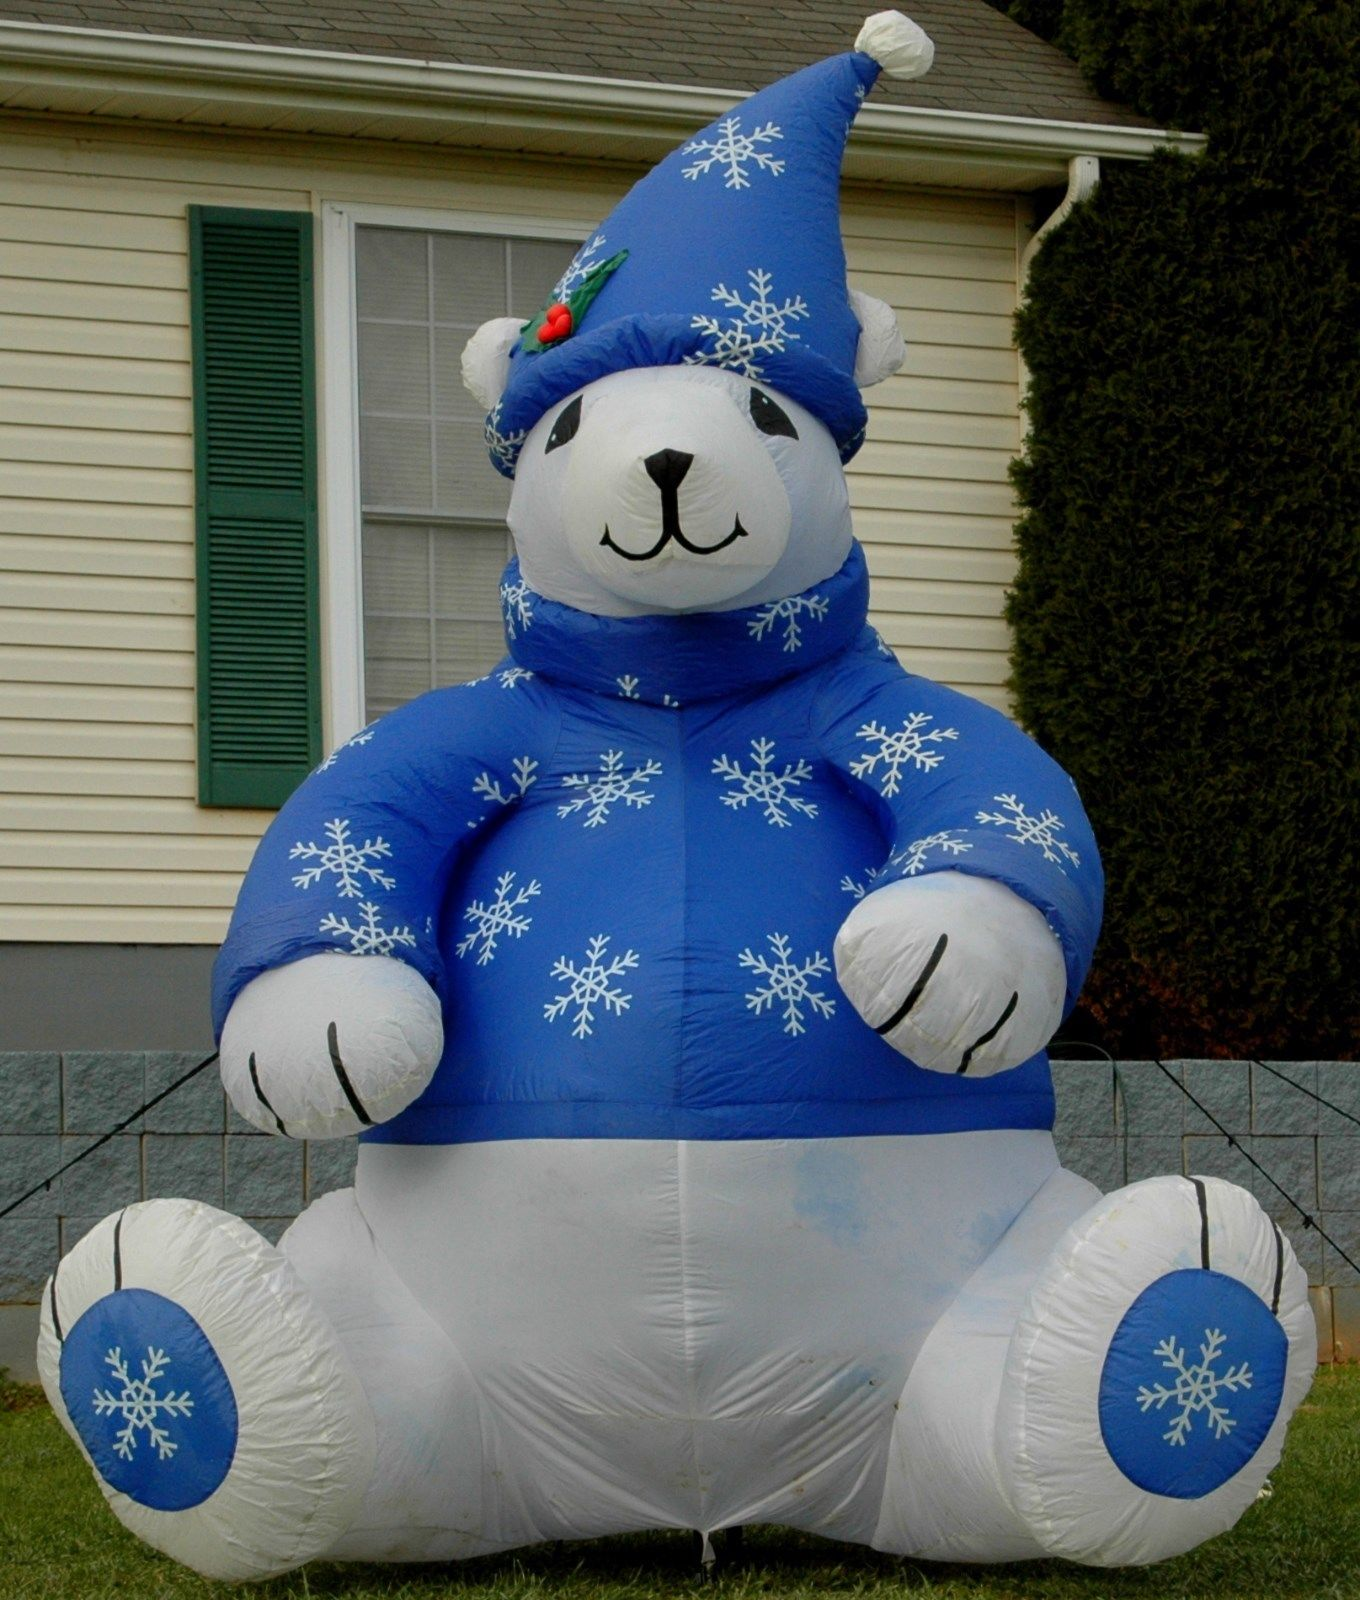 gemmy 8 ft polar bear w blue sweater hat christmas airblown inflatable displayjpg - Christmas Airblown Inflatables